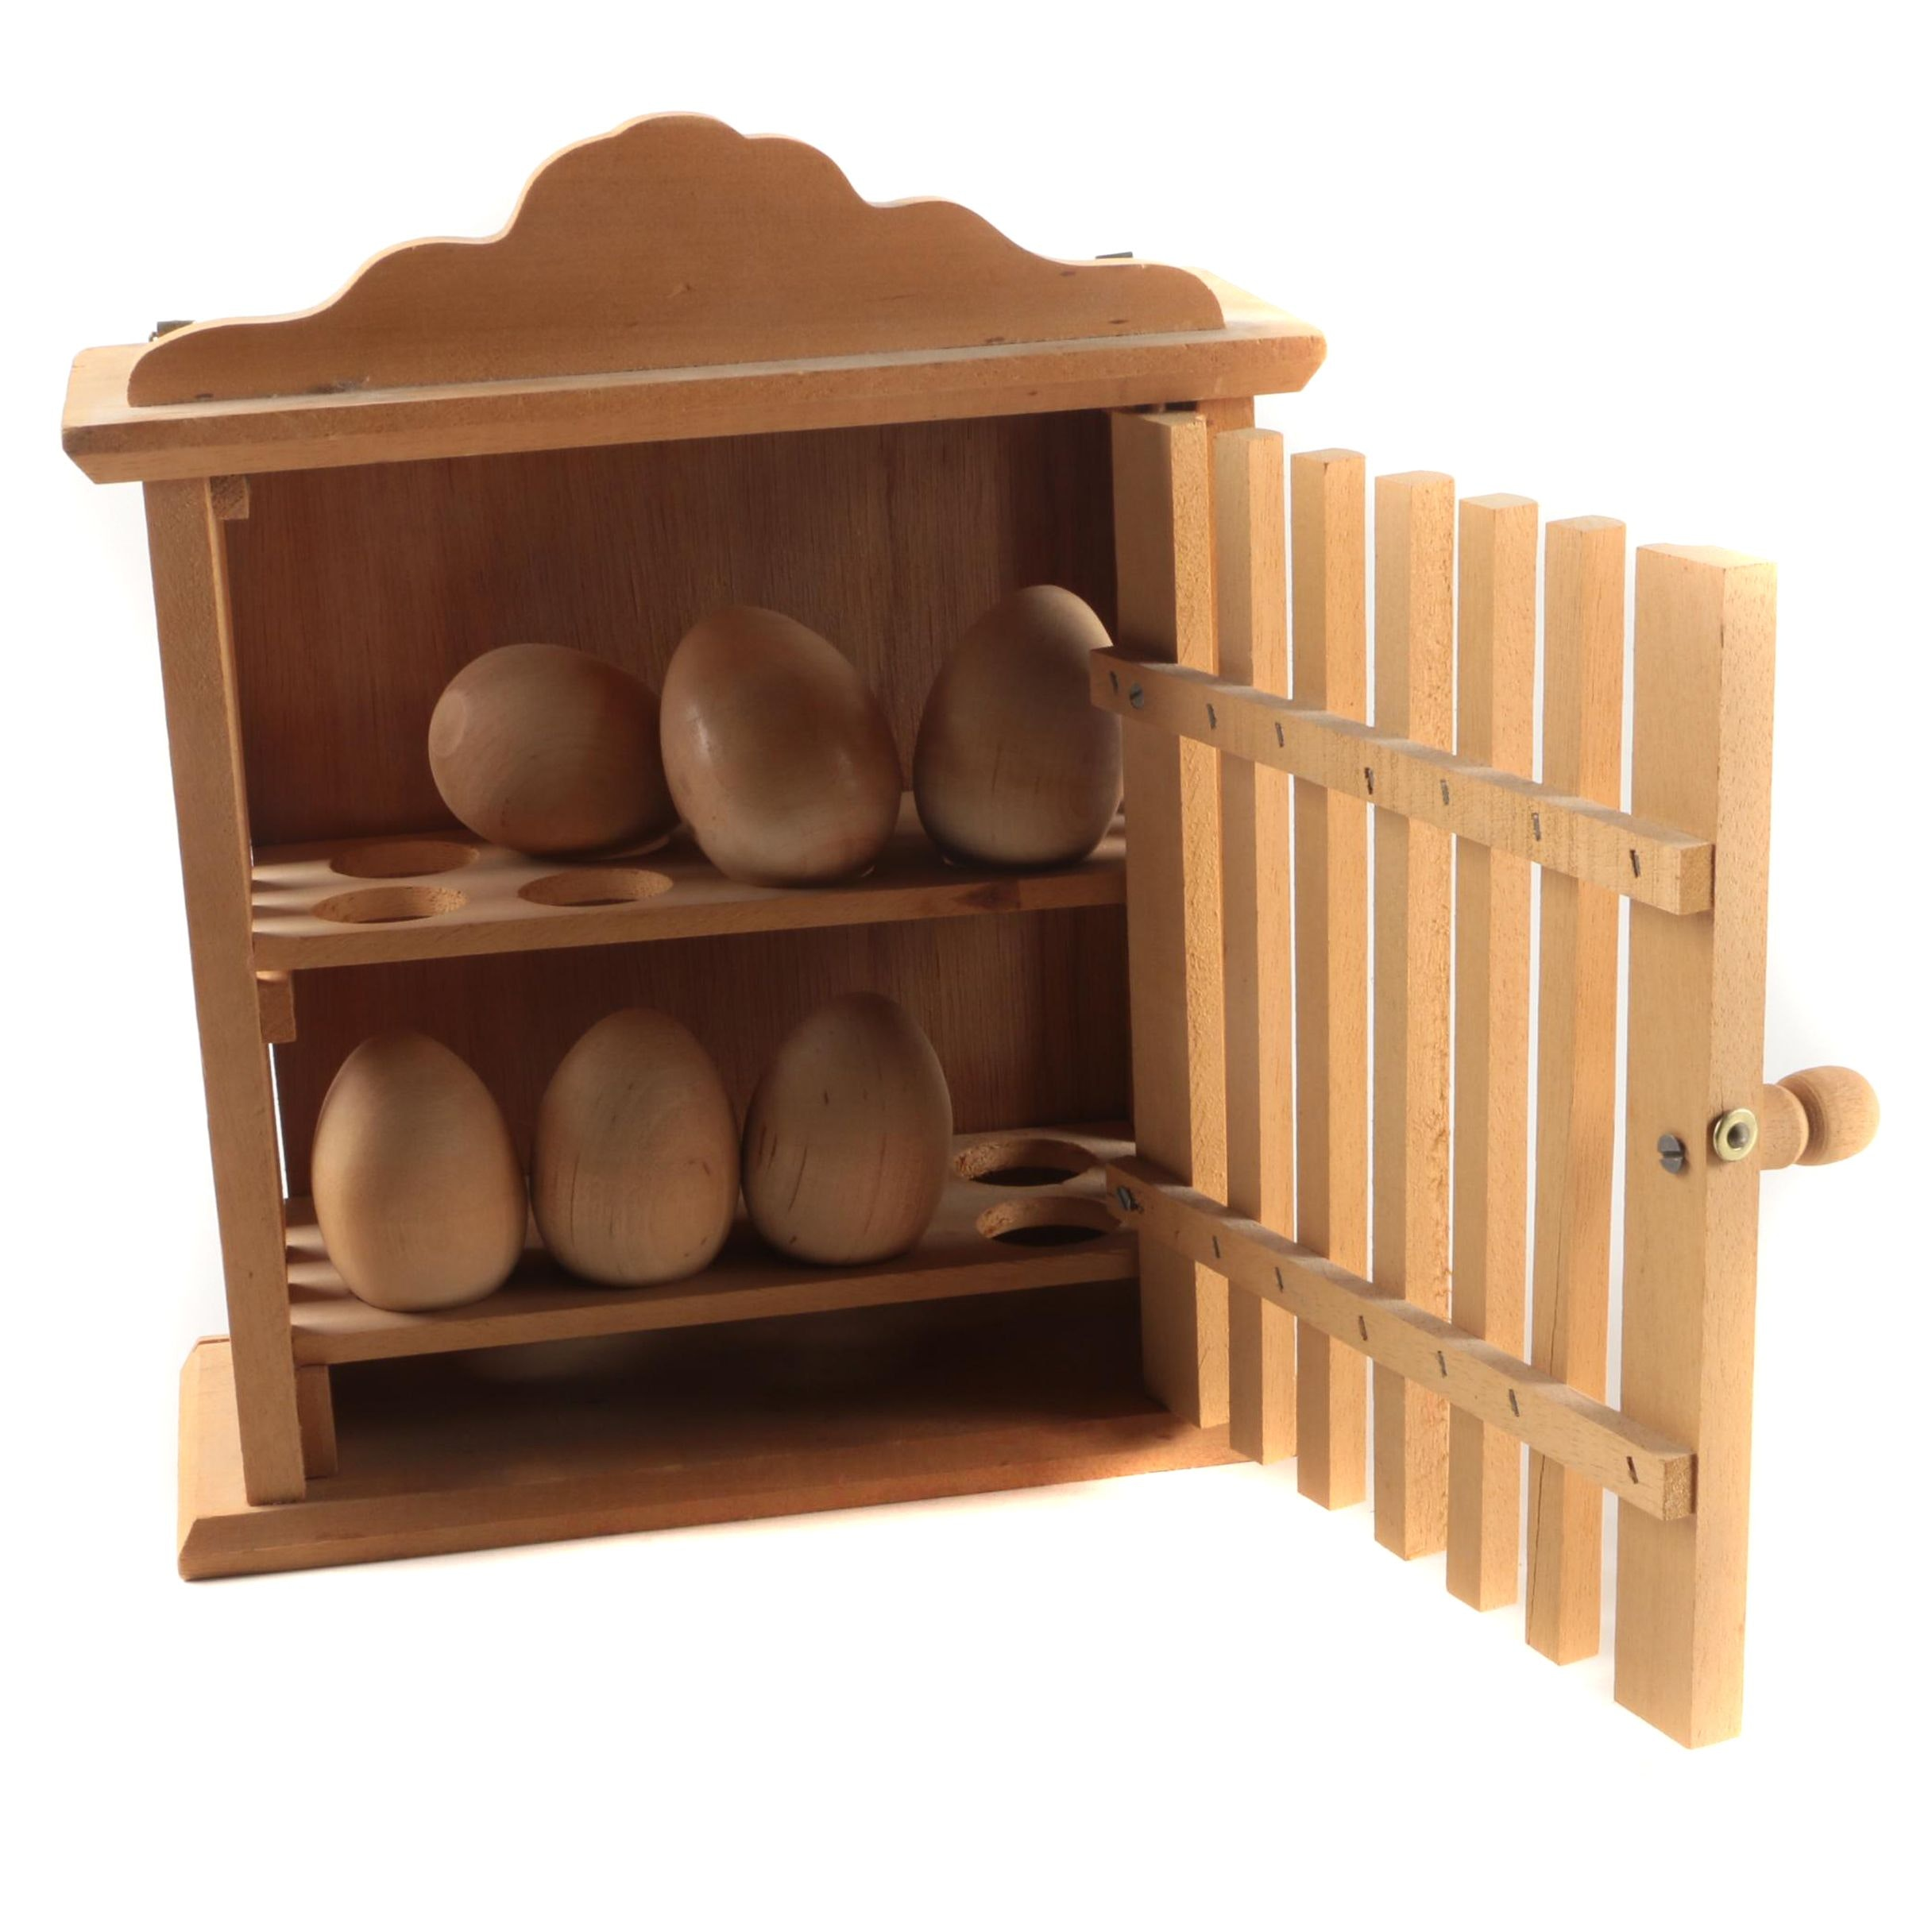 Wall Hanging Wooden Egg Cage